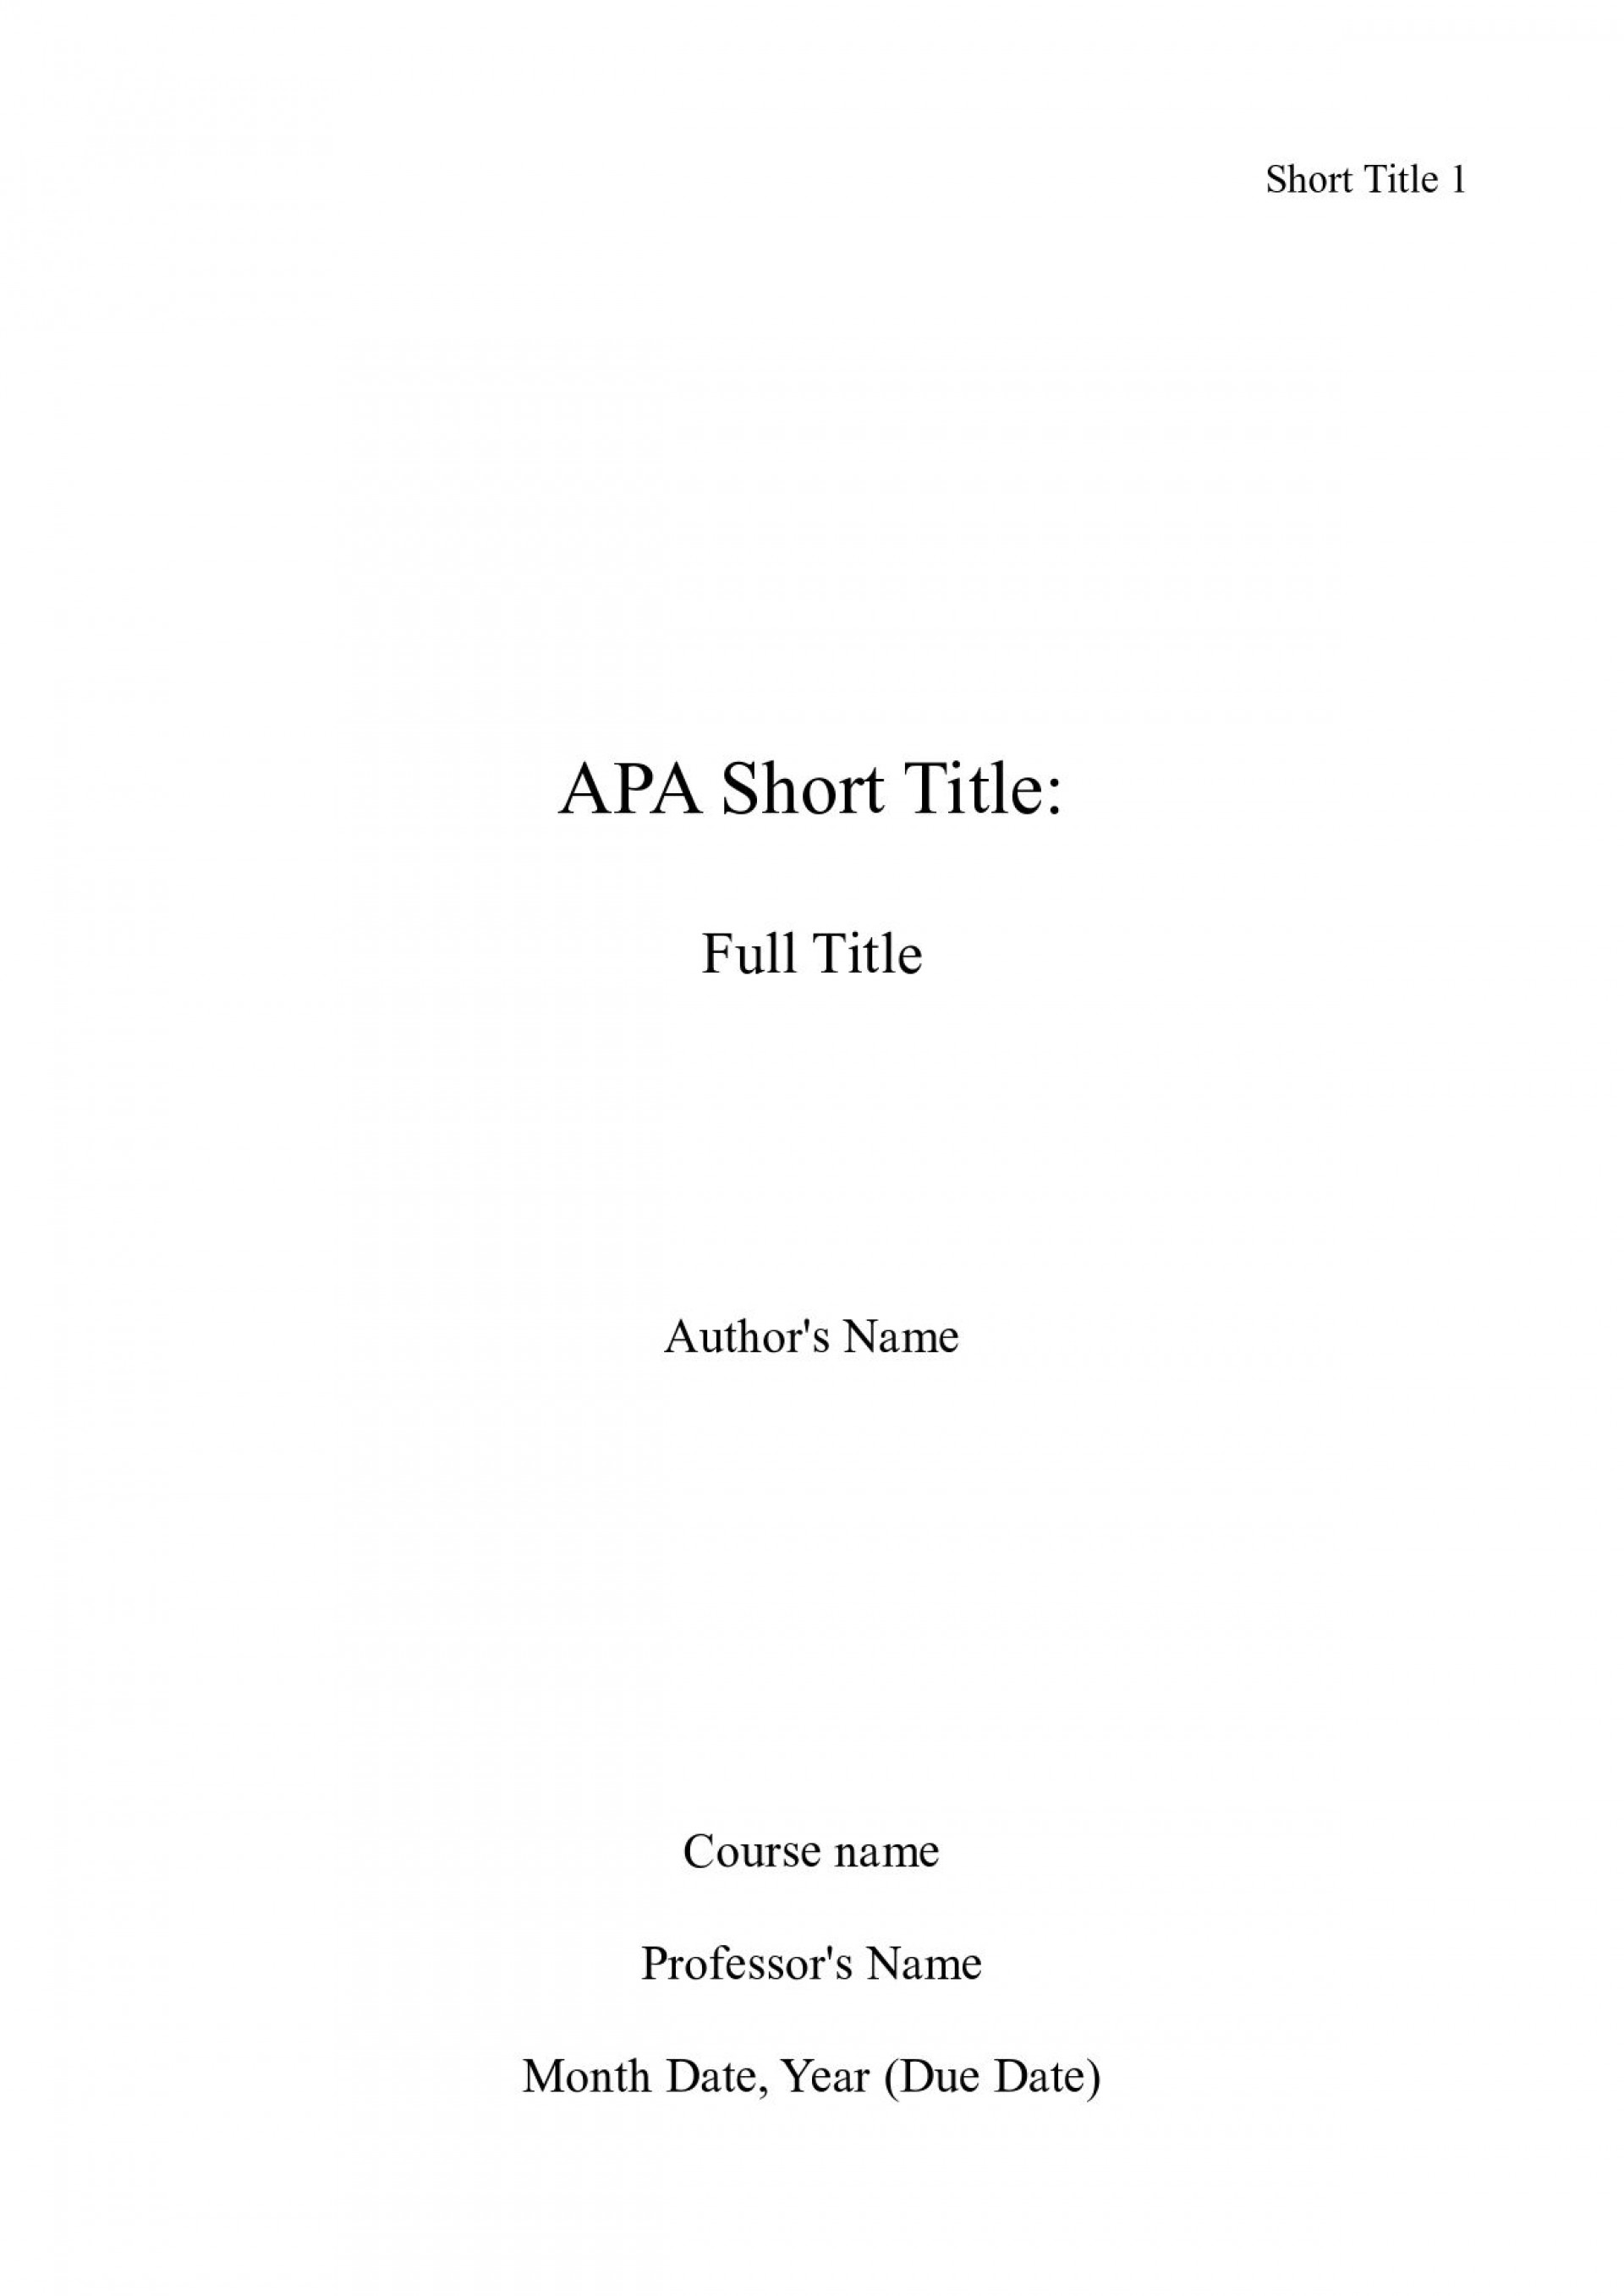 005 Cover Page For Research Paper Apa Style Dreaded Of Term Template Format 1920